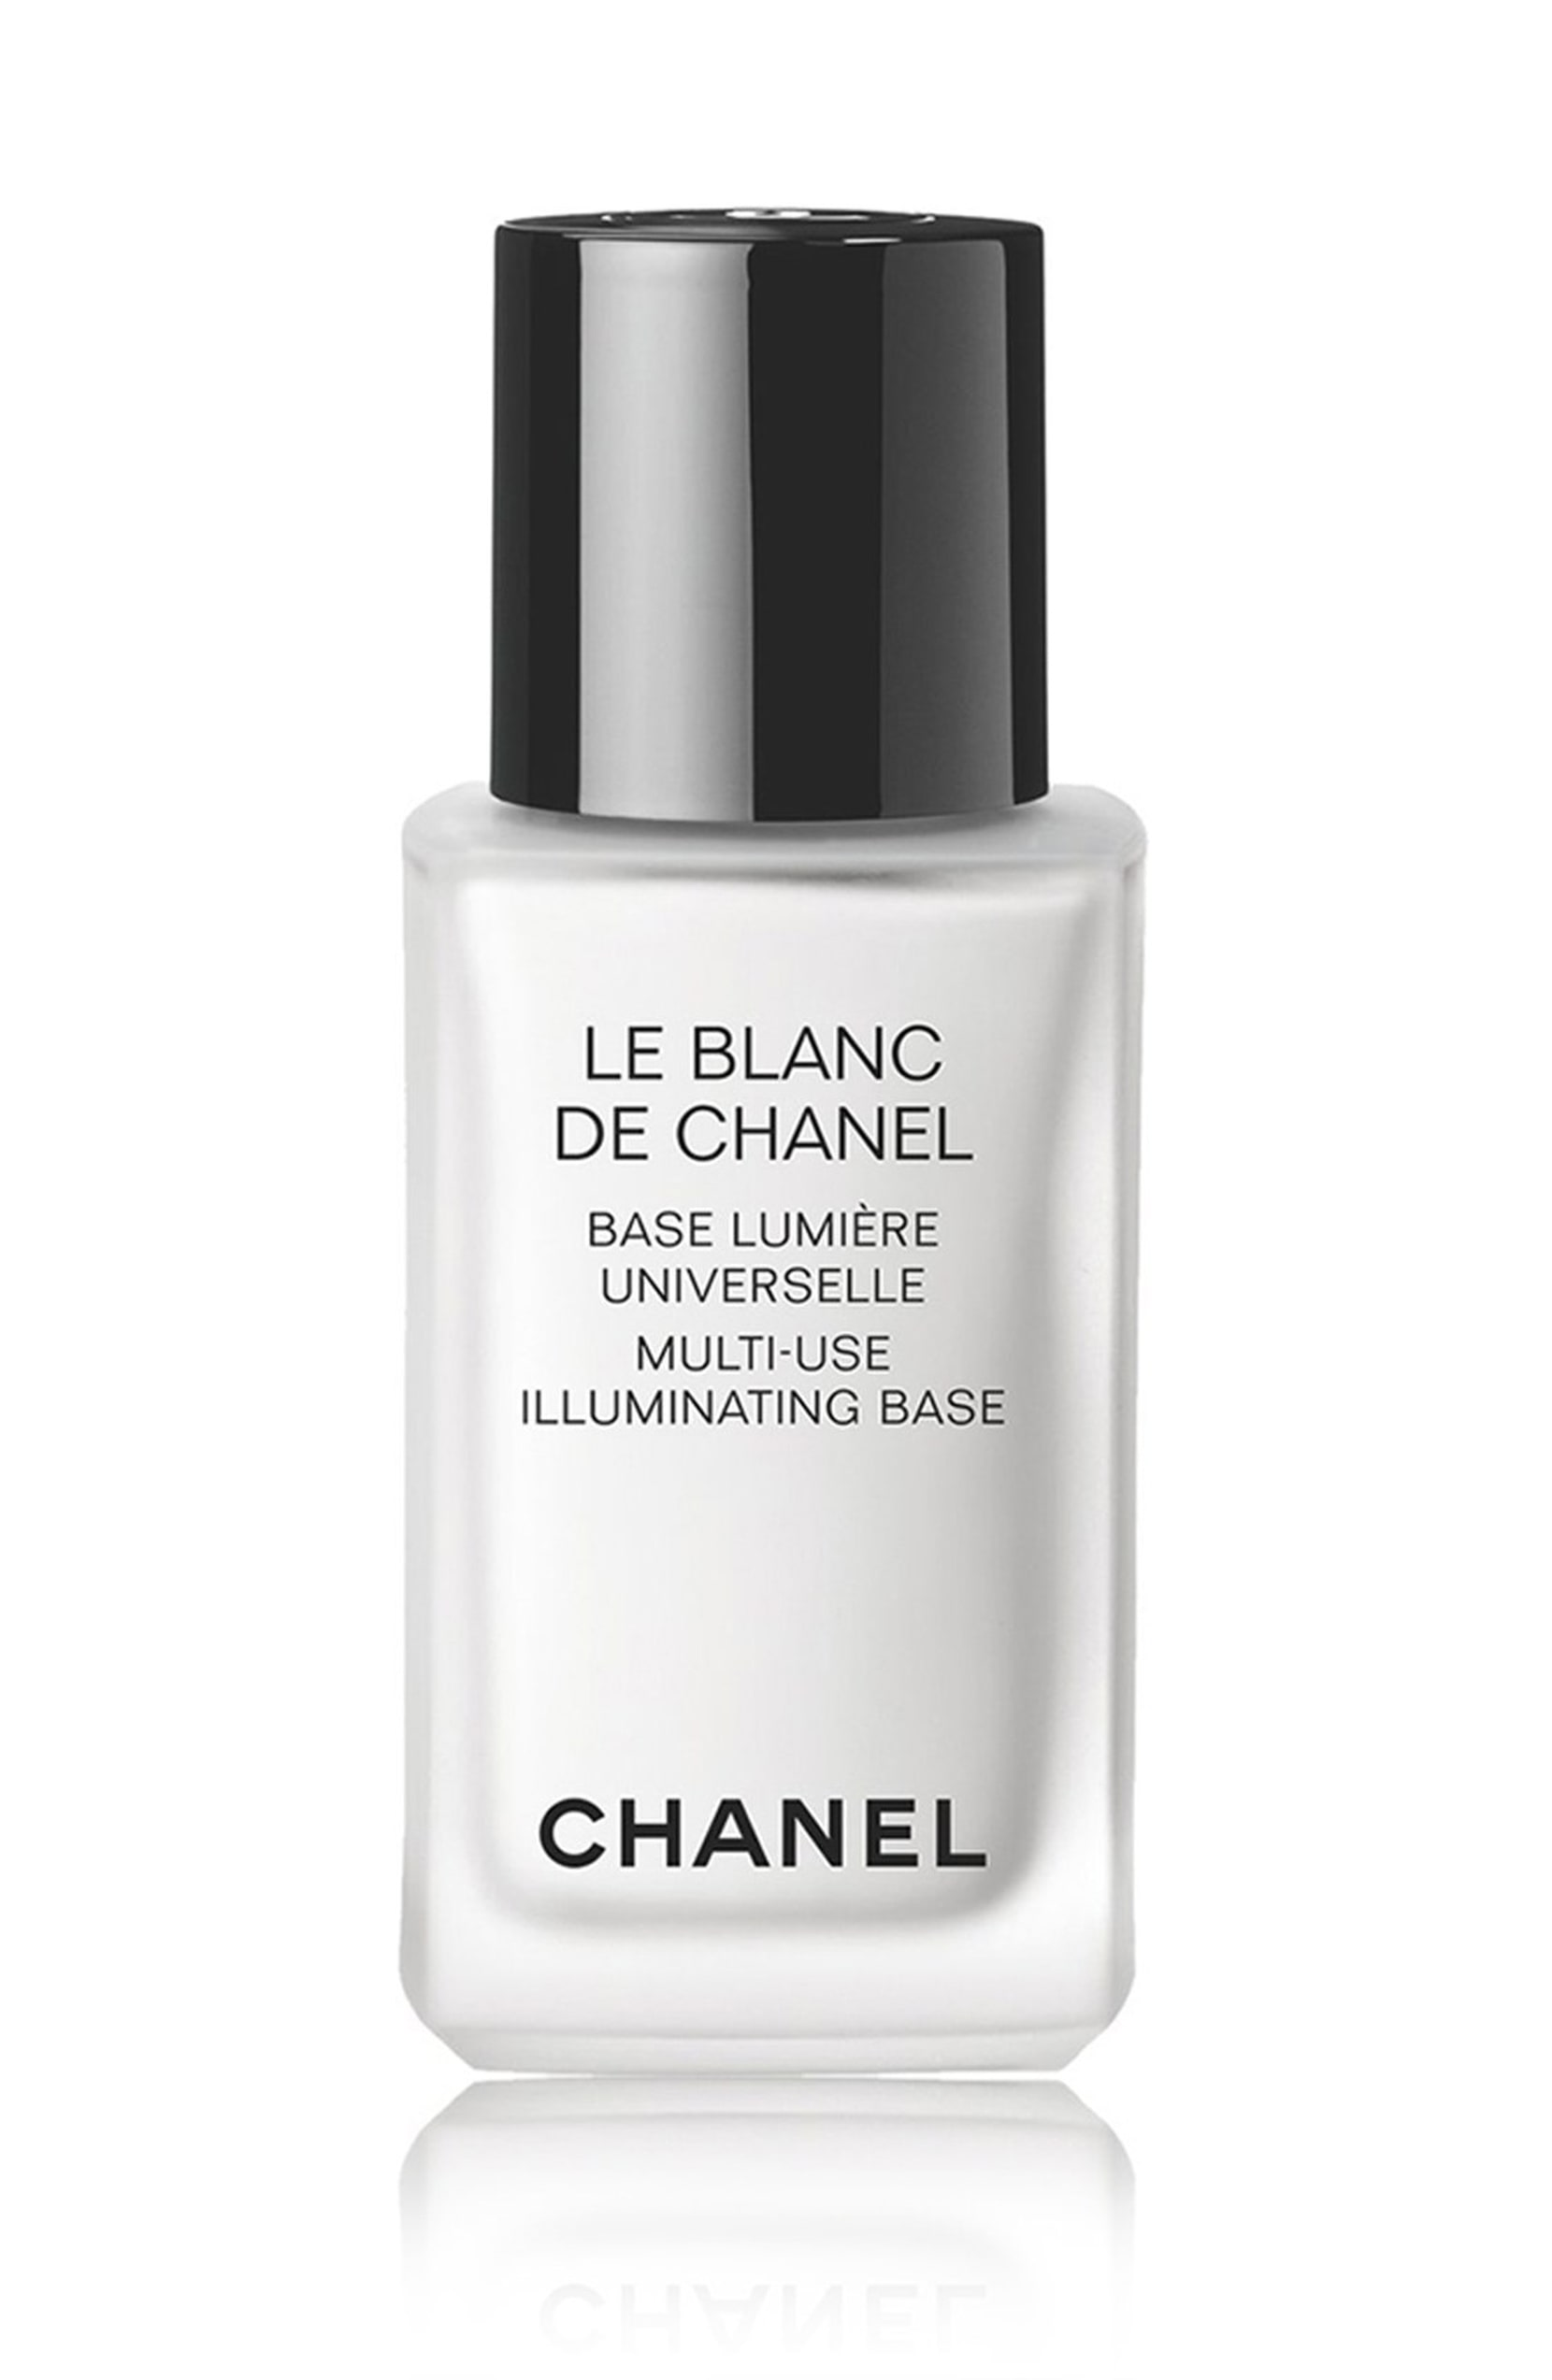 Chanel, Le Blanc De Chanel Multi-Use Illuminating Base